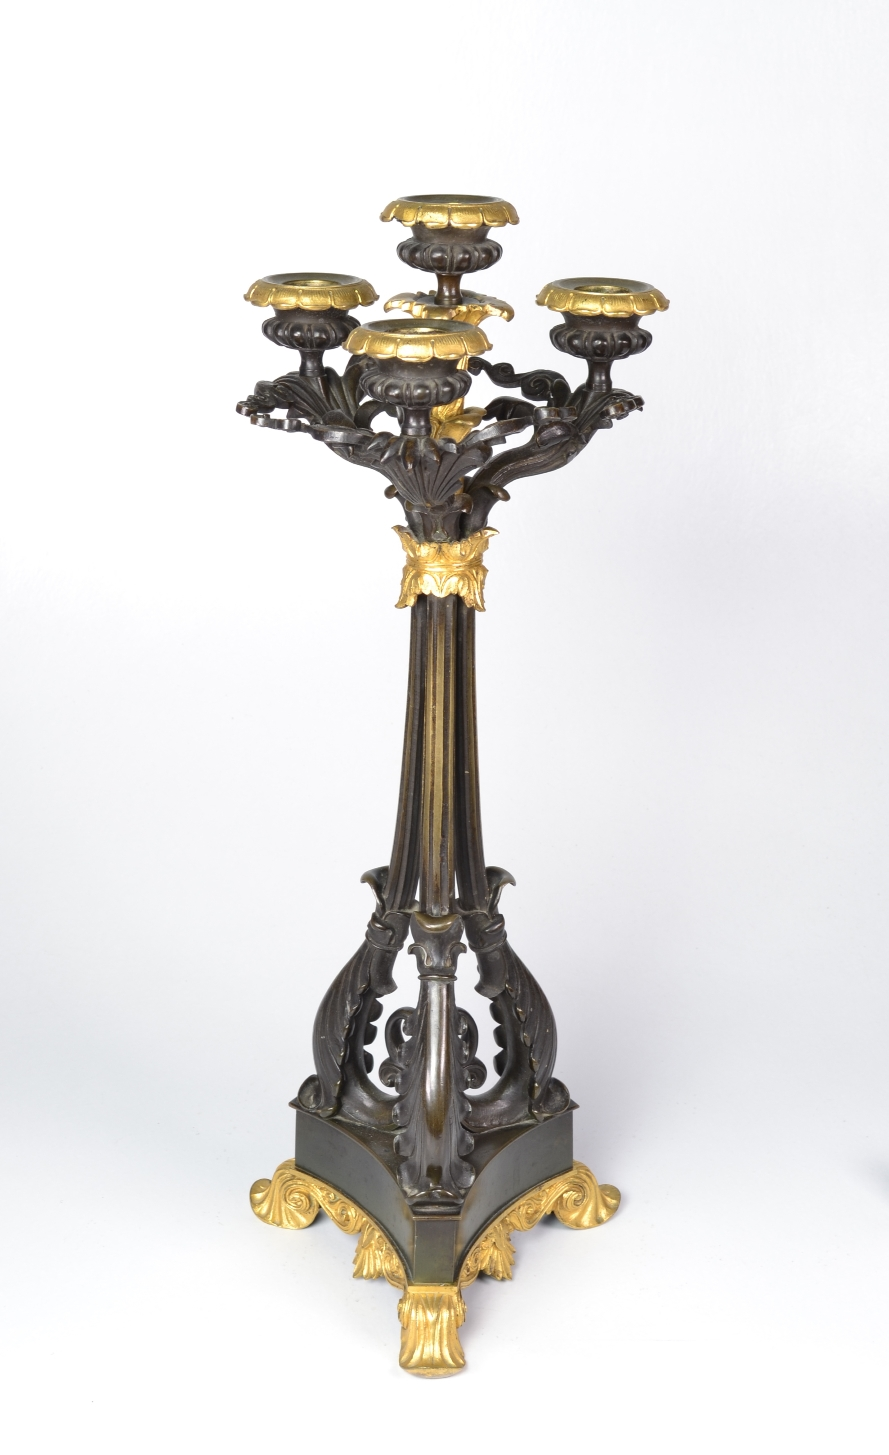 View 5: Pair of Louis-Philippe Bronze and Ormolu Candelabra, c. 1840